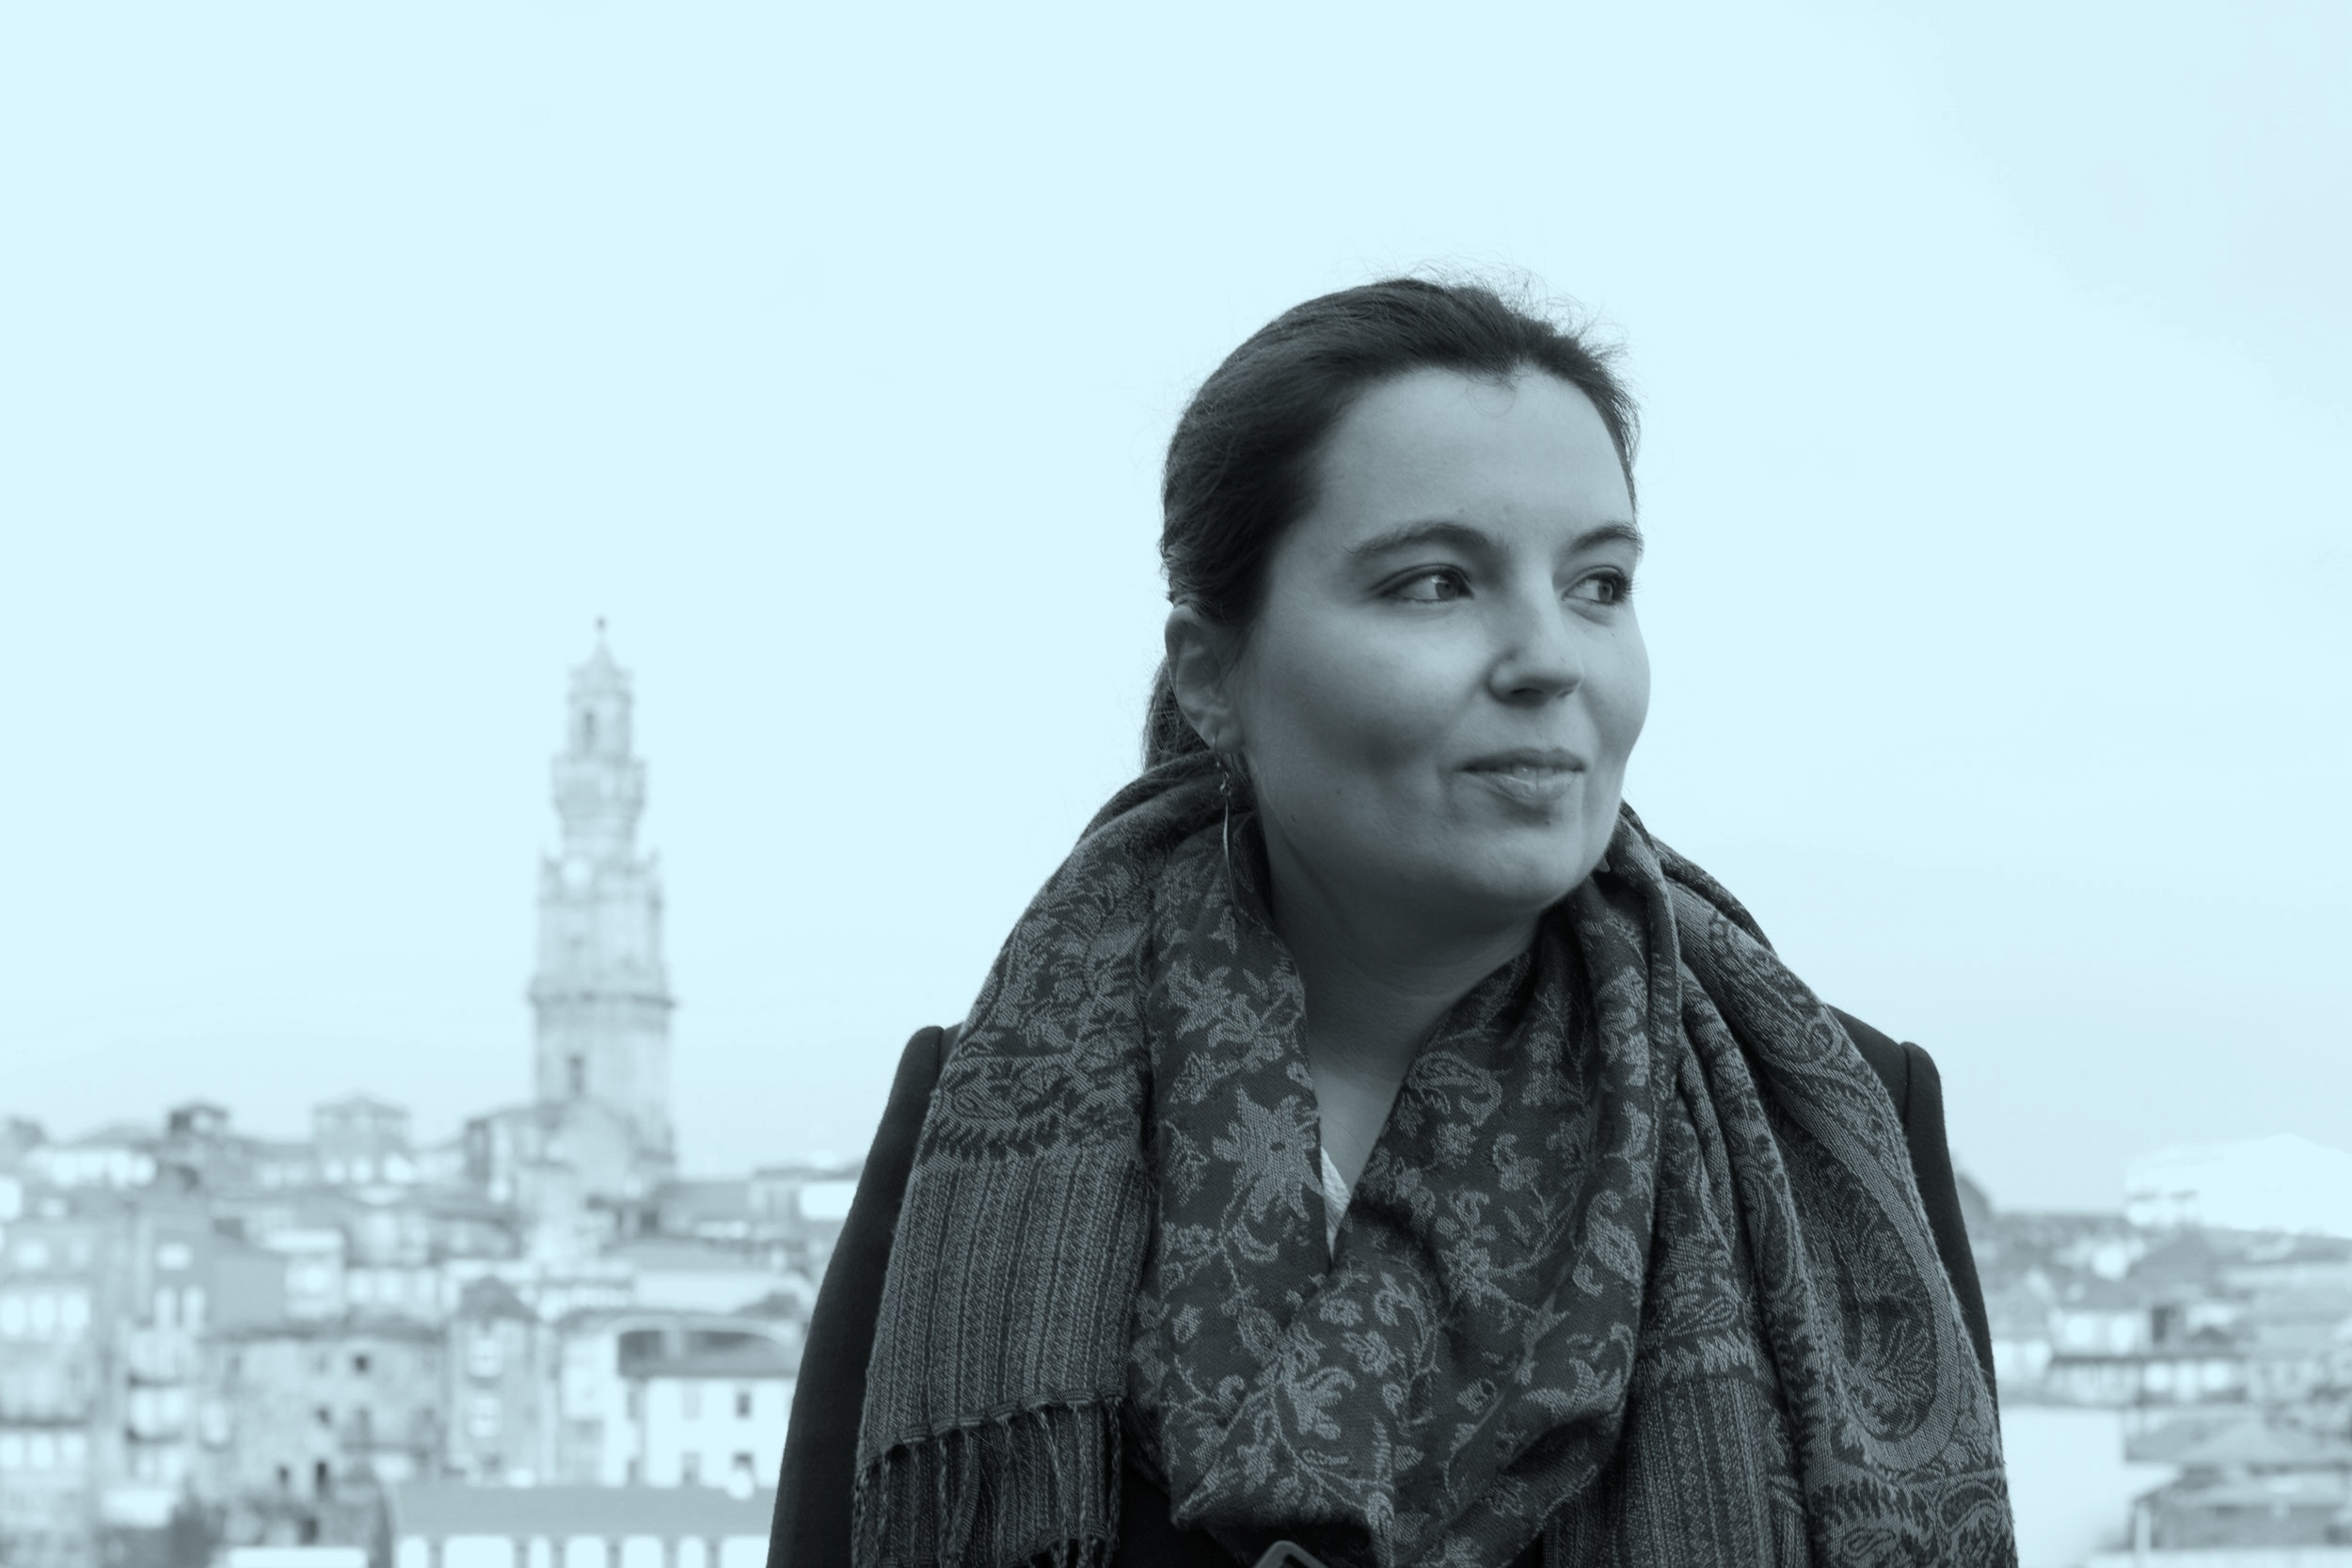 "FILIPA FIGUEIRA   FOUNDING PARTNER 1986, Oporto. PgDip, March, Architect  Before founding HAS Filipa worked in private practice as Filipa Figueira Arquitectura (2009-2018) and with André Santos (2009-2013).  Filipa was awarded with the 8th place in the Urban Regeneration of the Block Aurifícia competition in Oporto (2013) and selected for the top 20 proposals of the Museum of Comic and Cartoon Art competition in New York (2010). Her work has been exhibited in Oporto, Lisbon, Braga, Maia and Hong Kong.  Between 2012 and 2013 Filipa finished the Advanced Studies Course in Architectural Heritage at Faculdade de Arquitectura da Universidade do Porto (FAUP) and in 2013 was admitted in the PhD program.  Between 2013 and 2014 Filipa, together with Tiago Vieira and Building Pictures co-produced the video series ""Arquitectura à Moda do Porto"".  In 2017, together with Tiago Vieira, Filipa produced the exhibition ""Protótipo wishbox hab T2 A+"" at the Municipal Museum Armindo Teixeira Lopes, Mirandela."